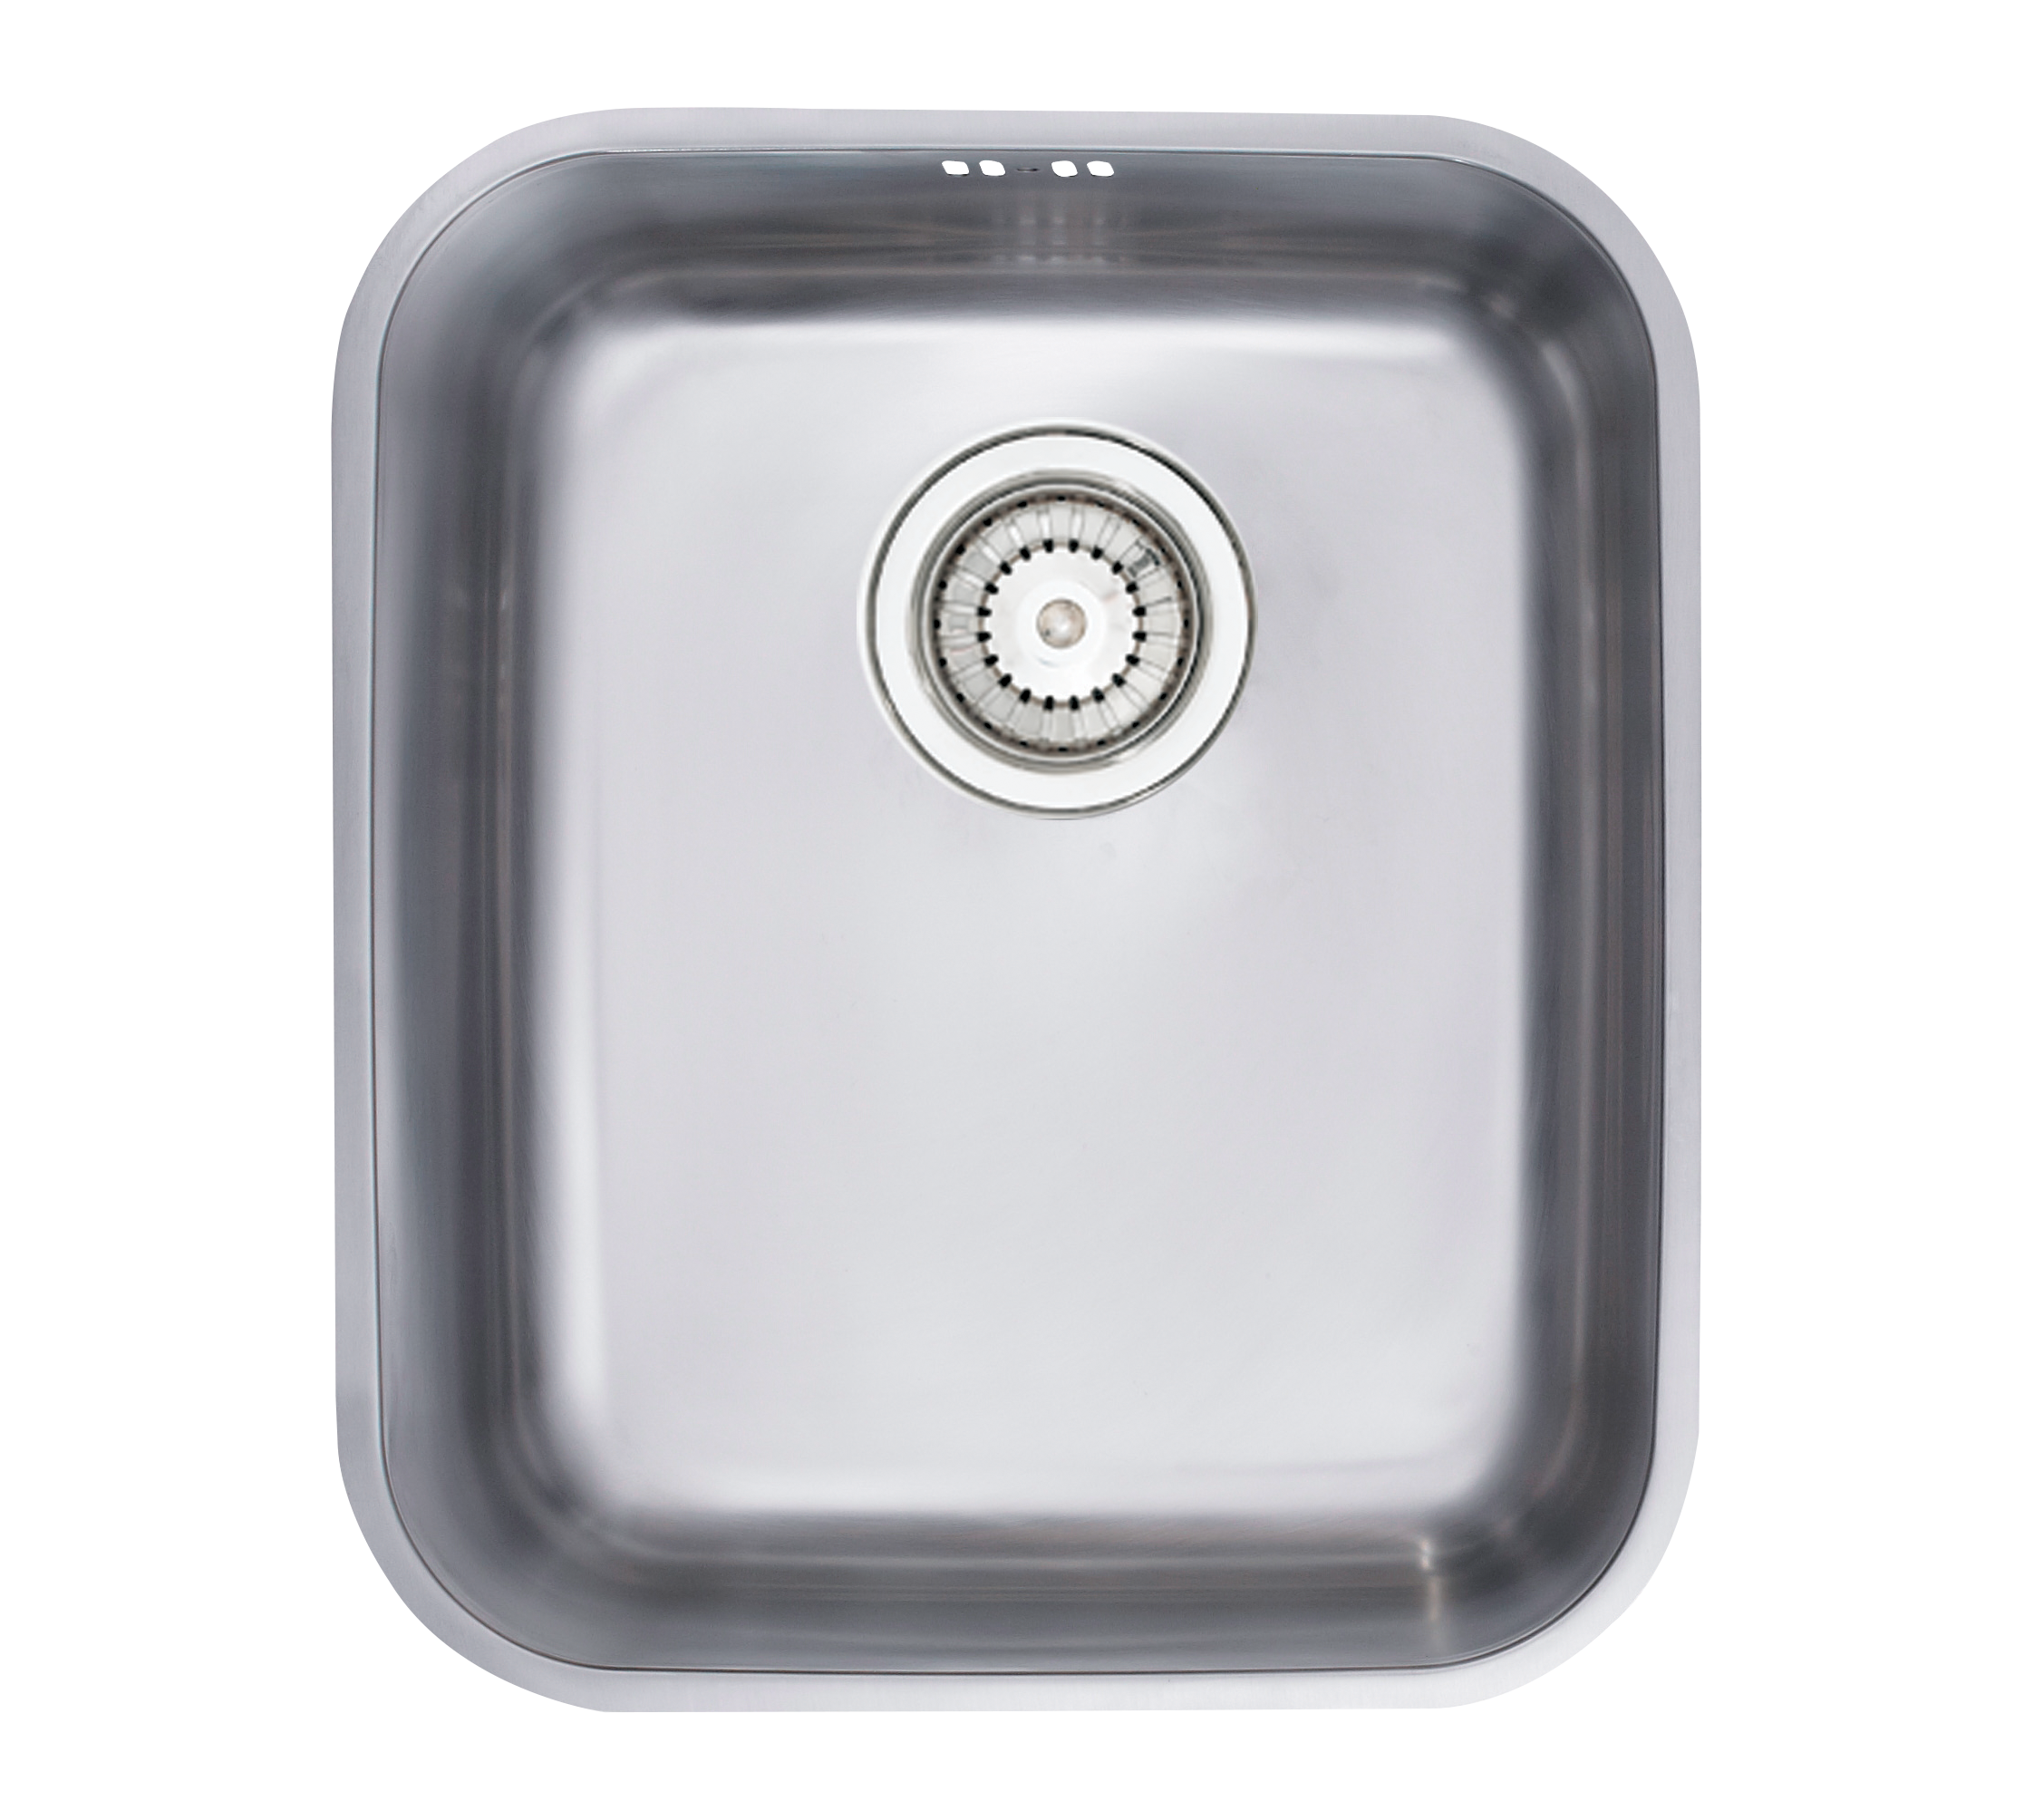 Florence Ts29 Sink In Polished Steel The Florence Range Of Sinks